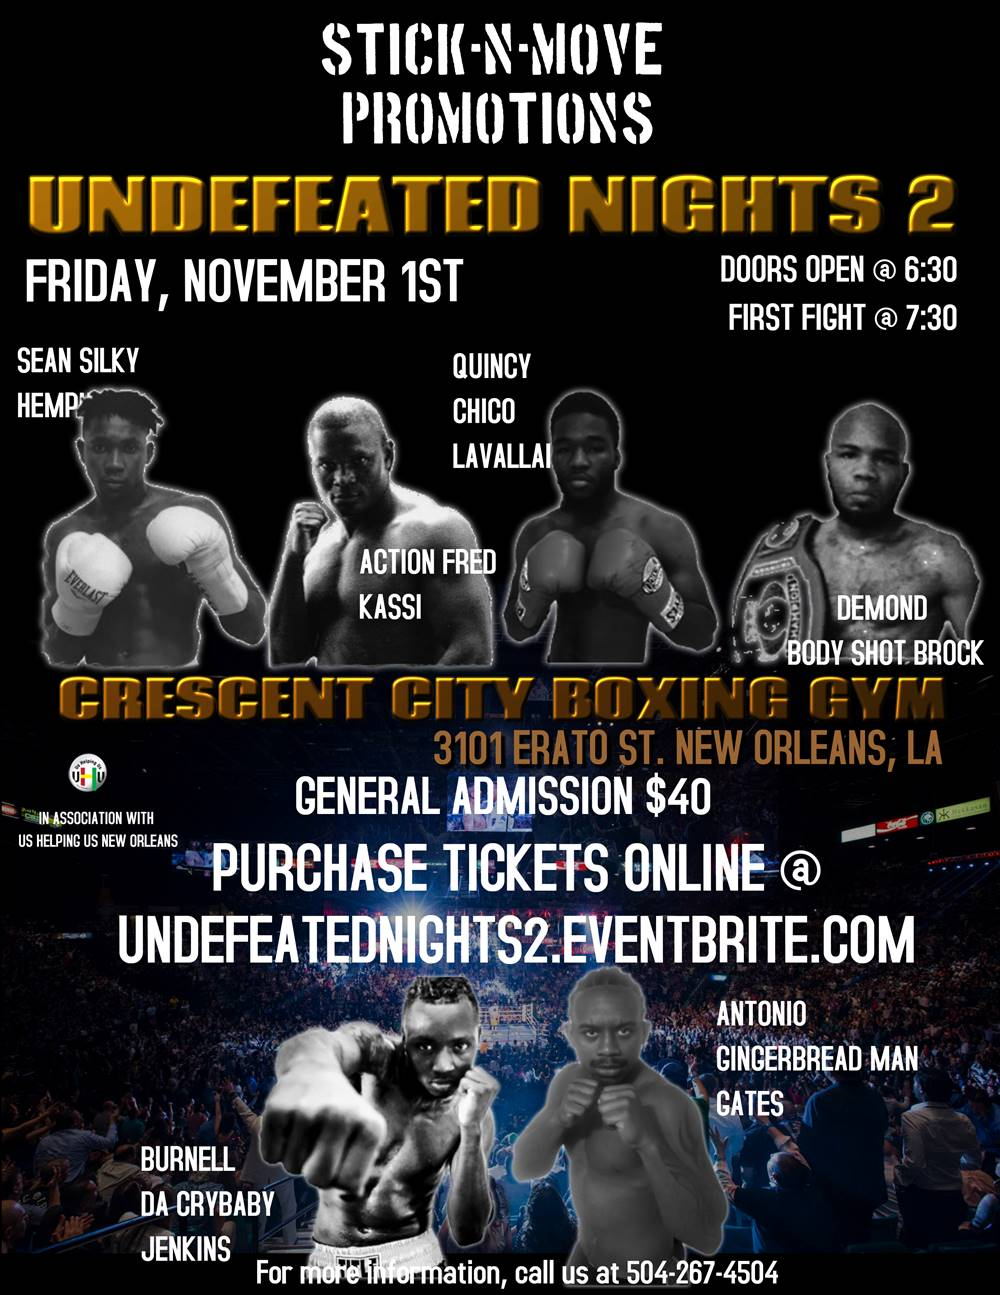 Undefeated Nights 2